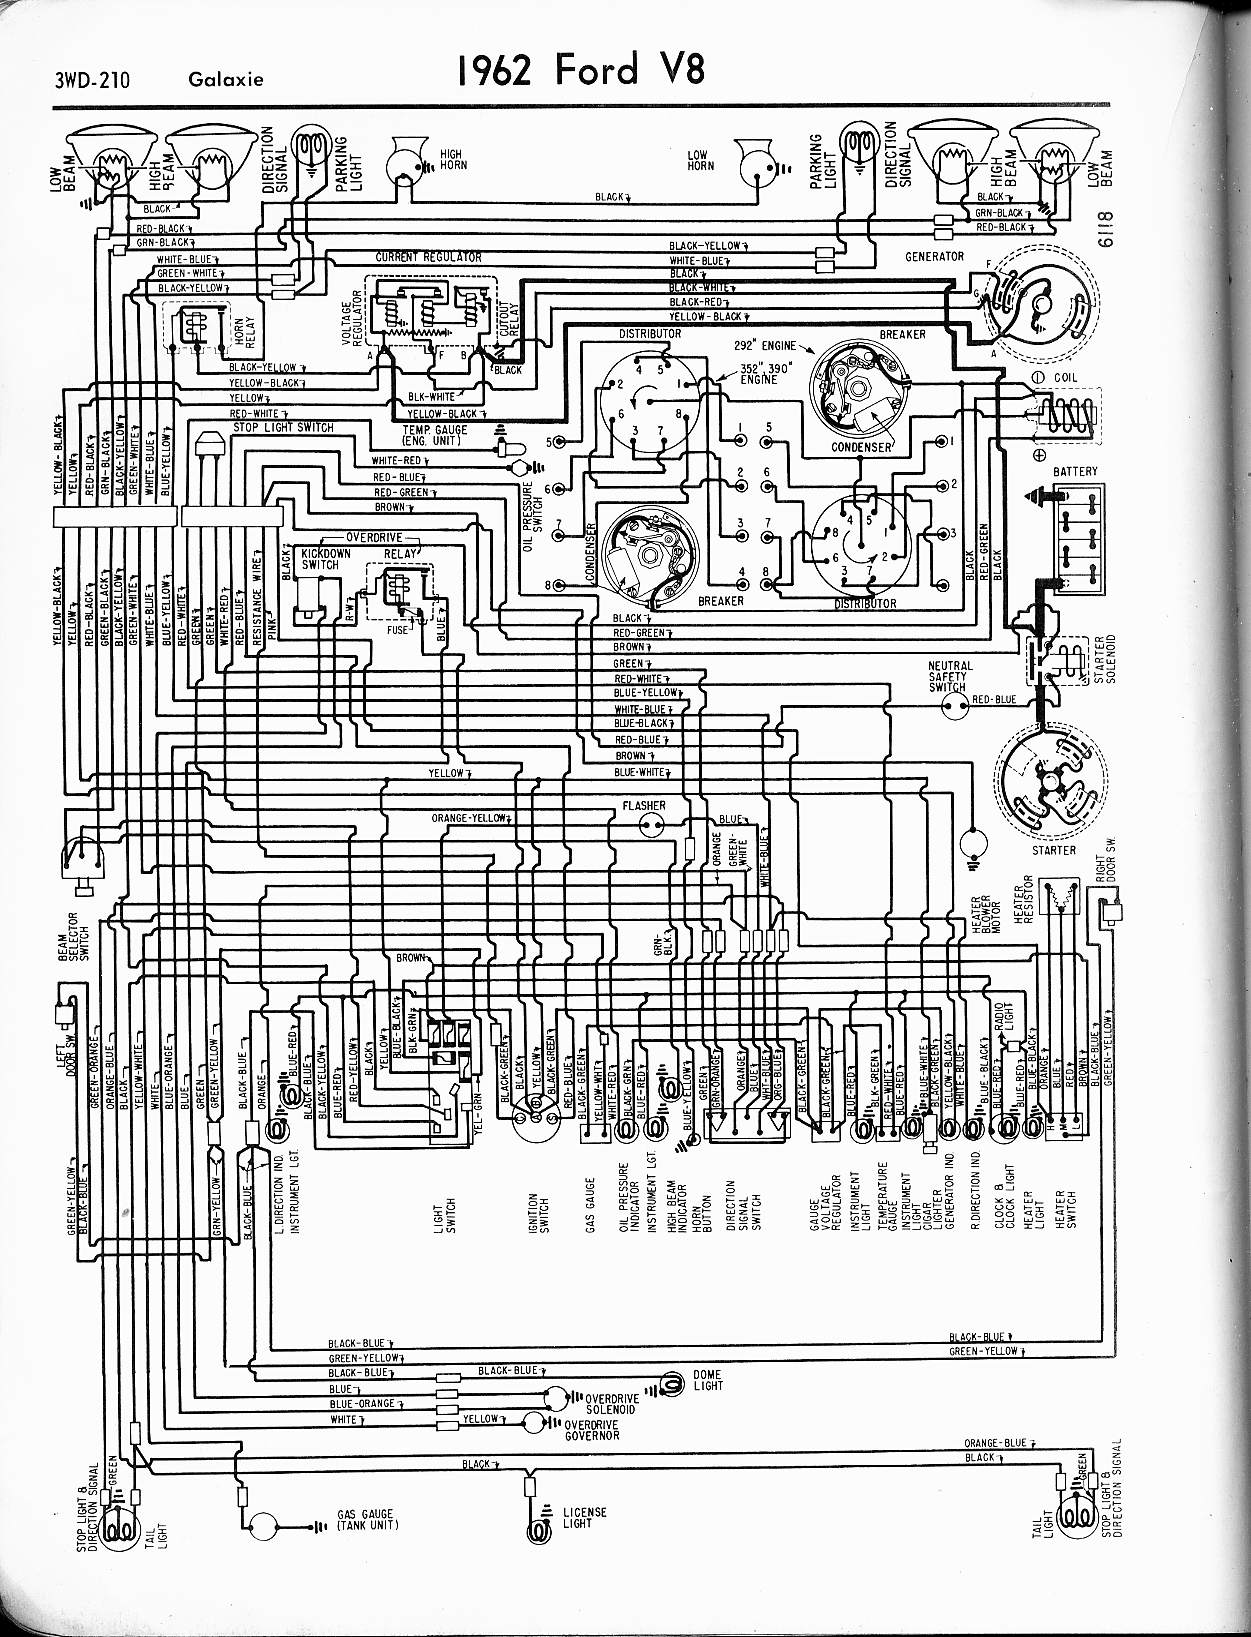 Ford Wiring Harness 1957 F 100 Books Of Diagram 1967 Another Blog About U2022 Rh Ok2 Infoservice Ru